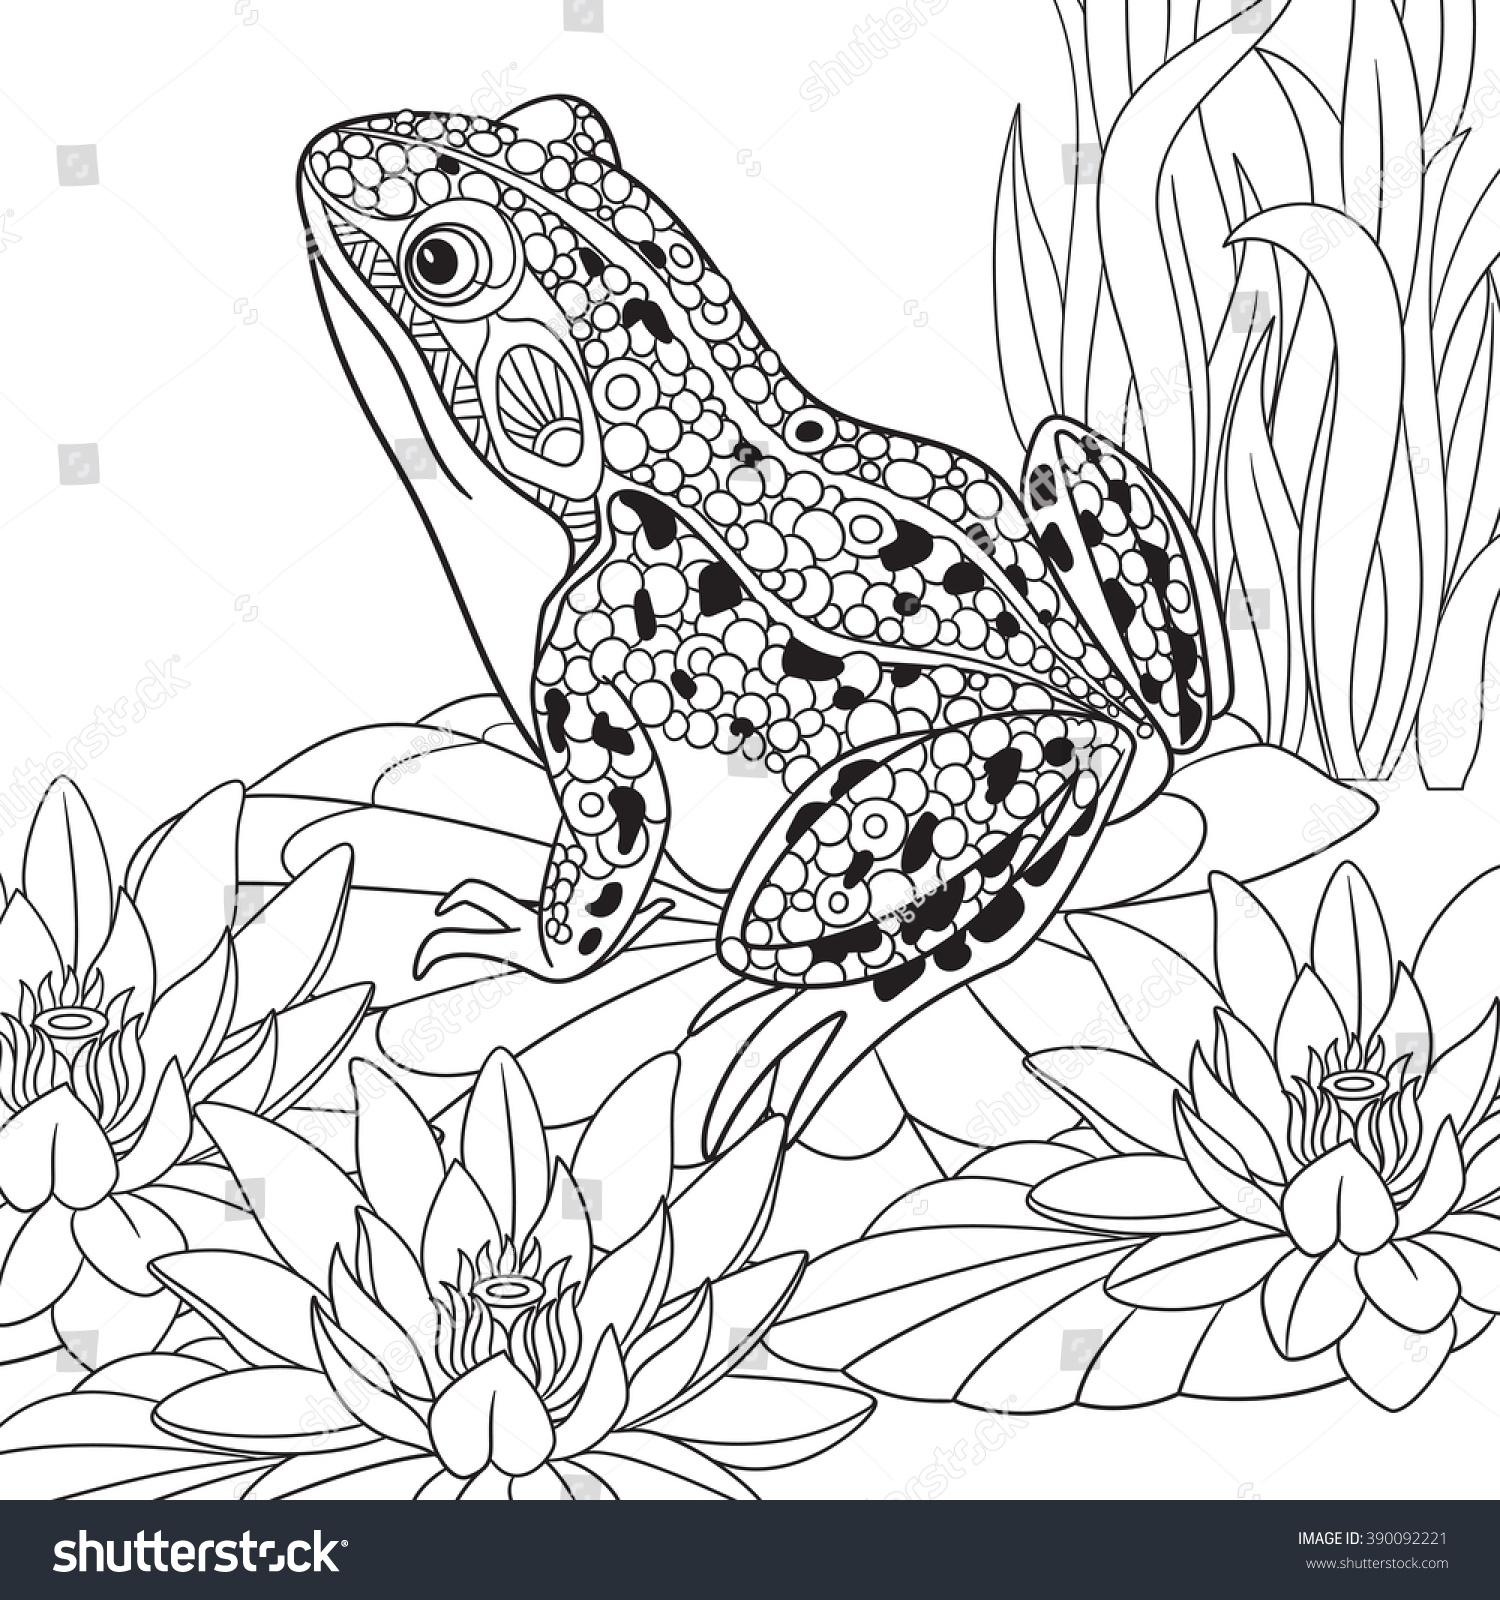 Lotus designs coloring book - Zentangle Stylized Cartoon Frog Sitting Among Lotus Flowers Water Lilies Sketch For Adult